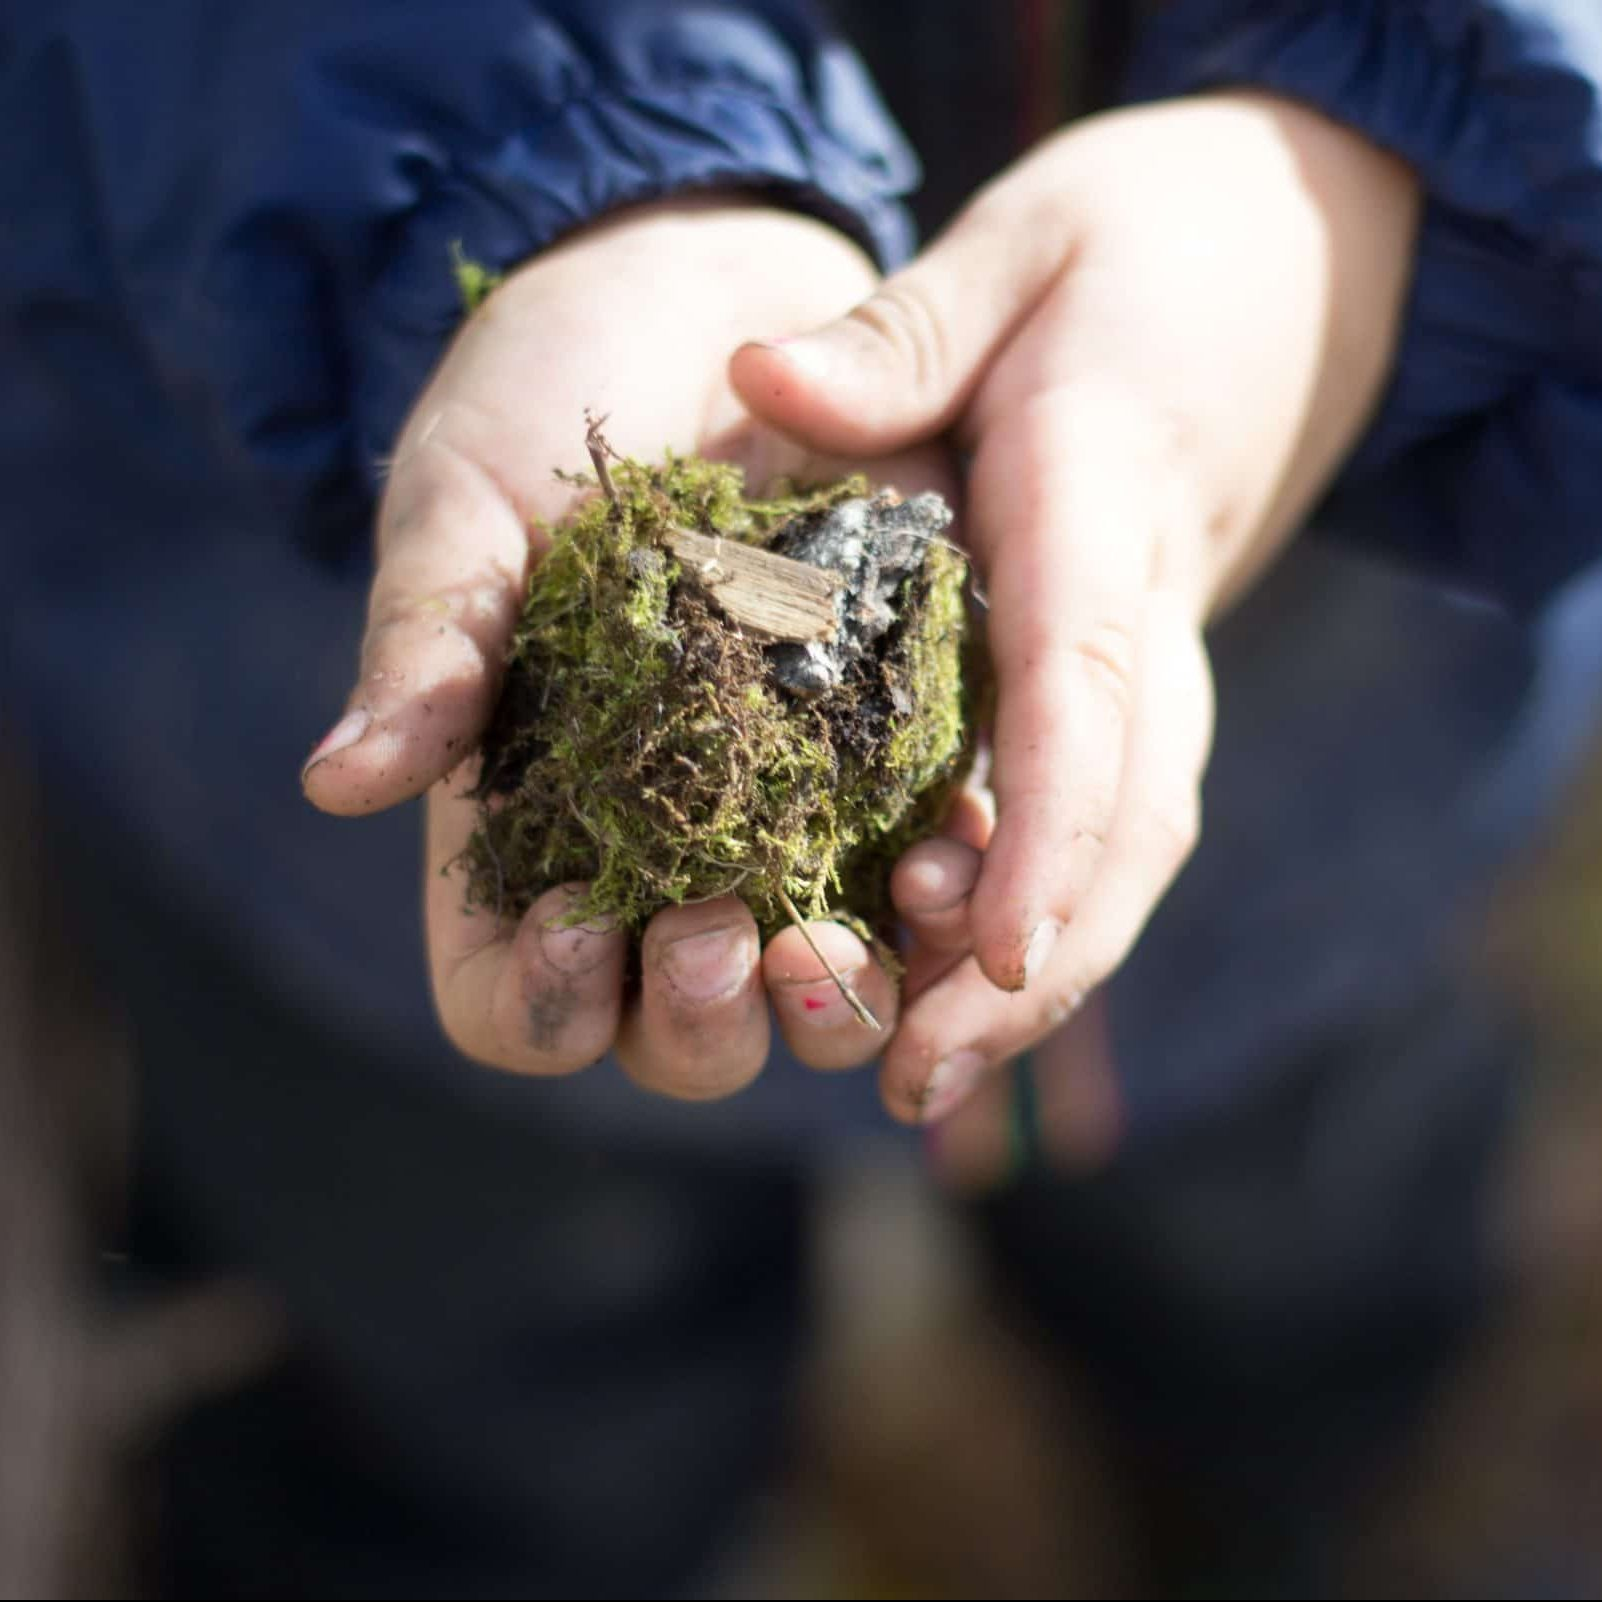 A small child's hands holds a clump of earth in their hands.